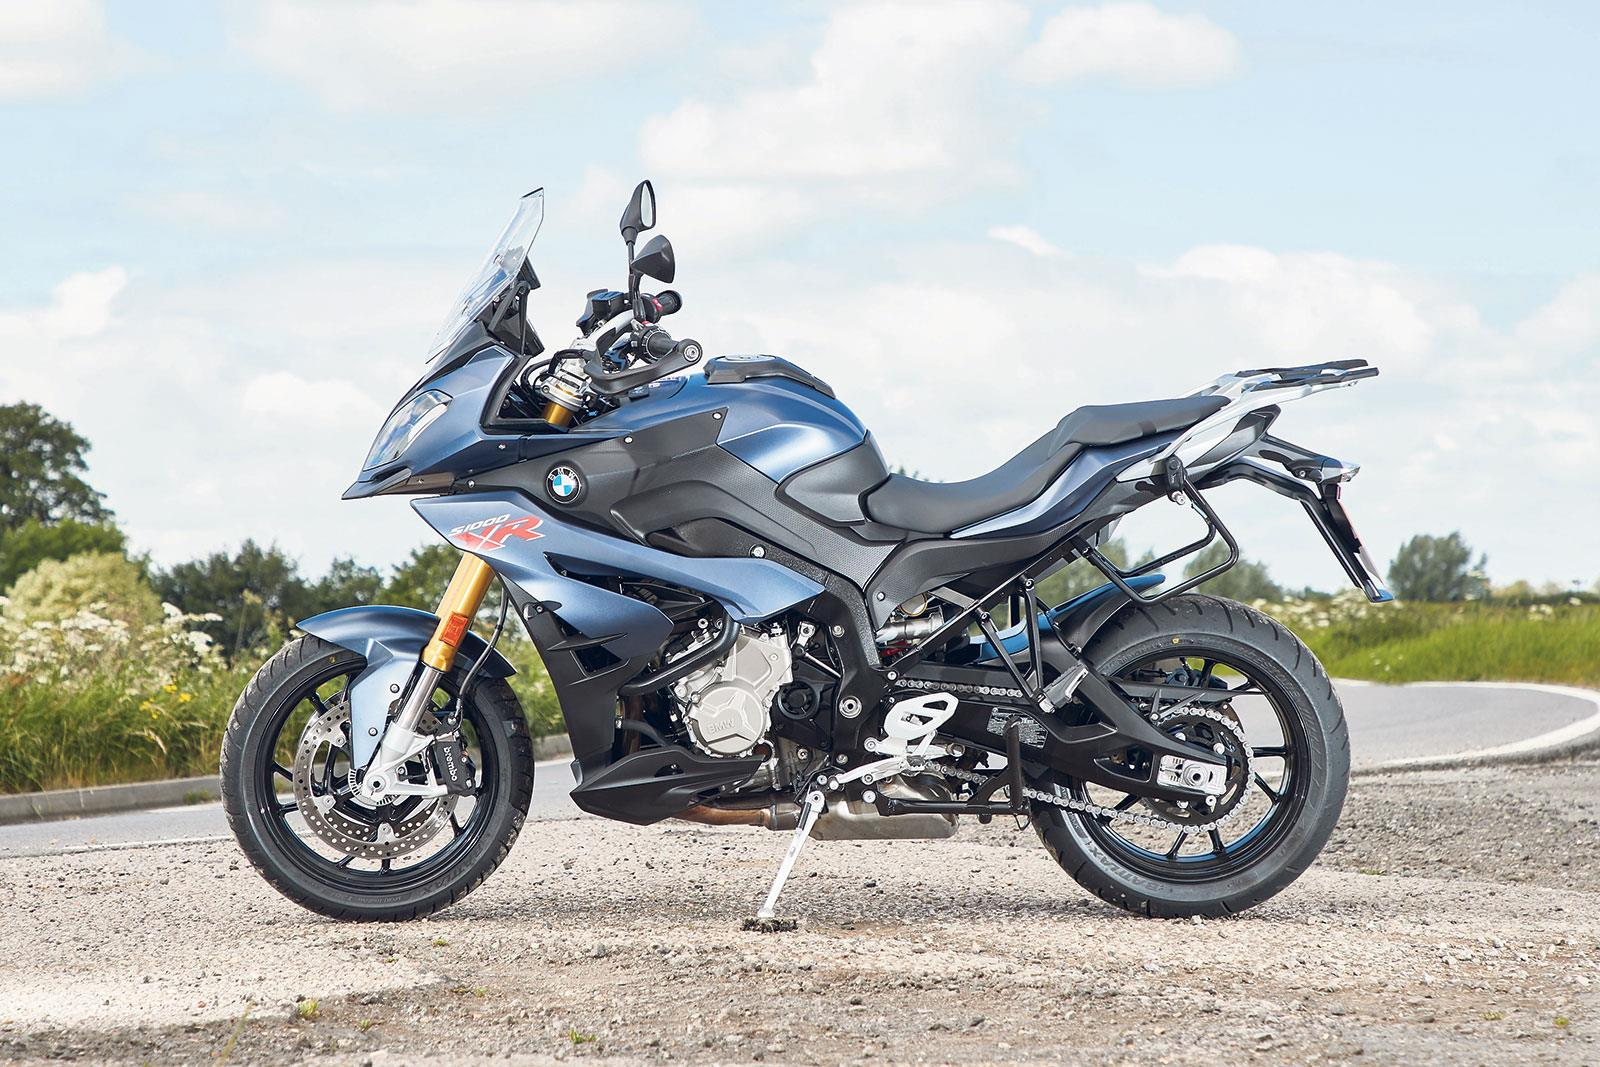 2017 adventure sport bike of the year: BMW S1000XR